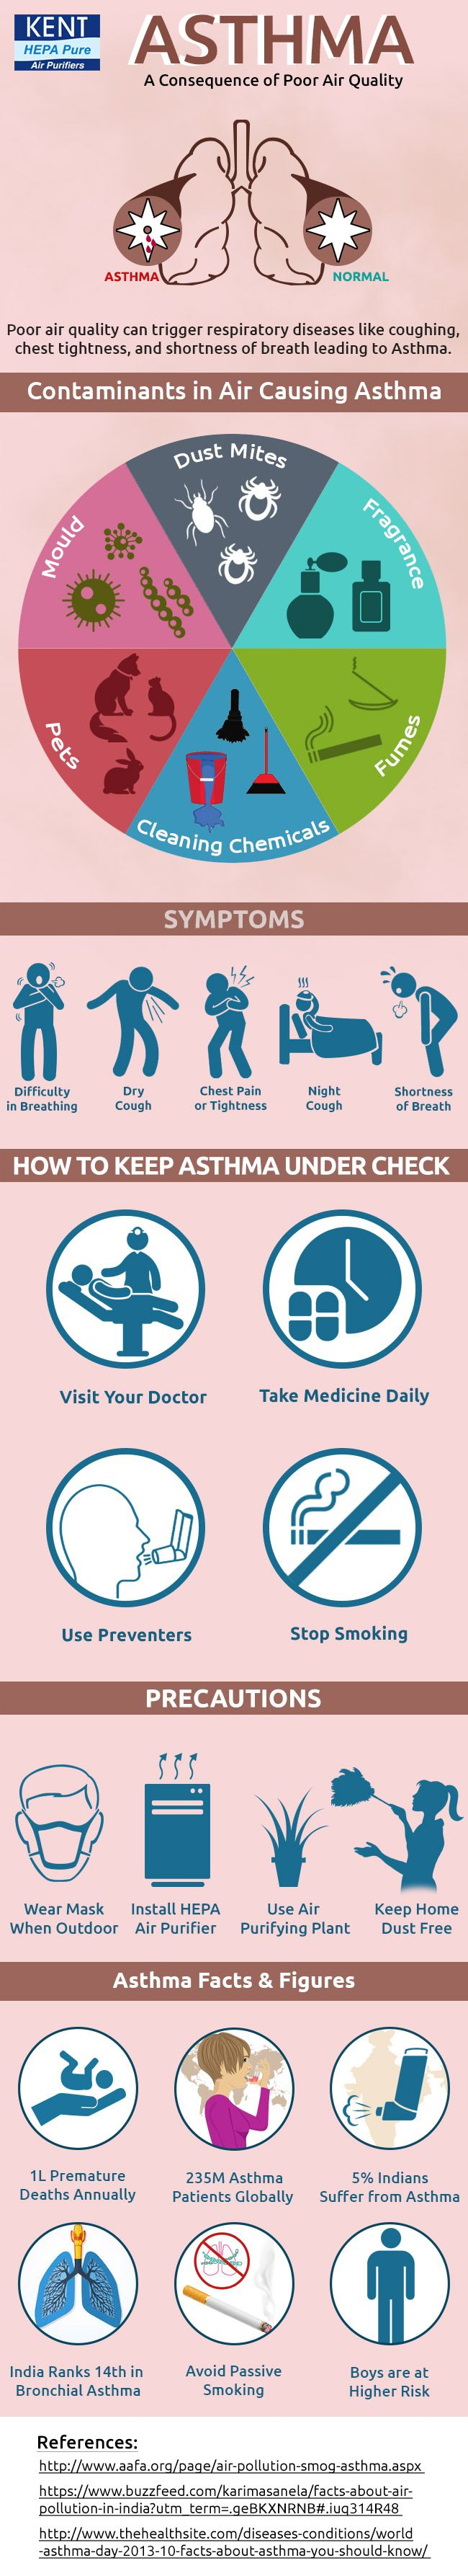 Asthma The Consequence of Poor Air Quality KENT